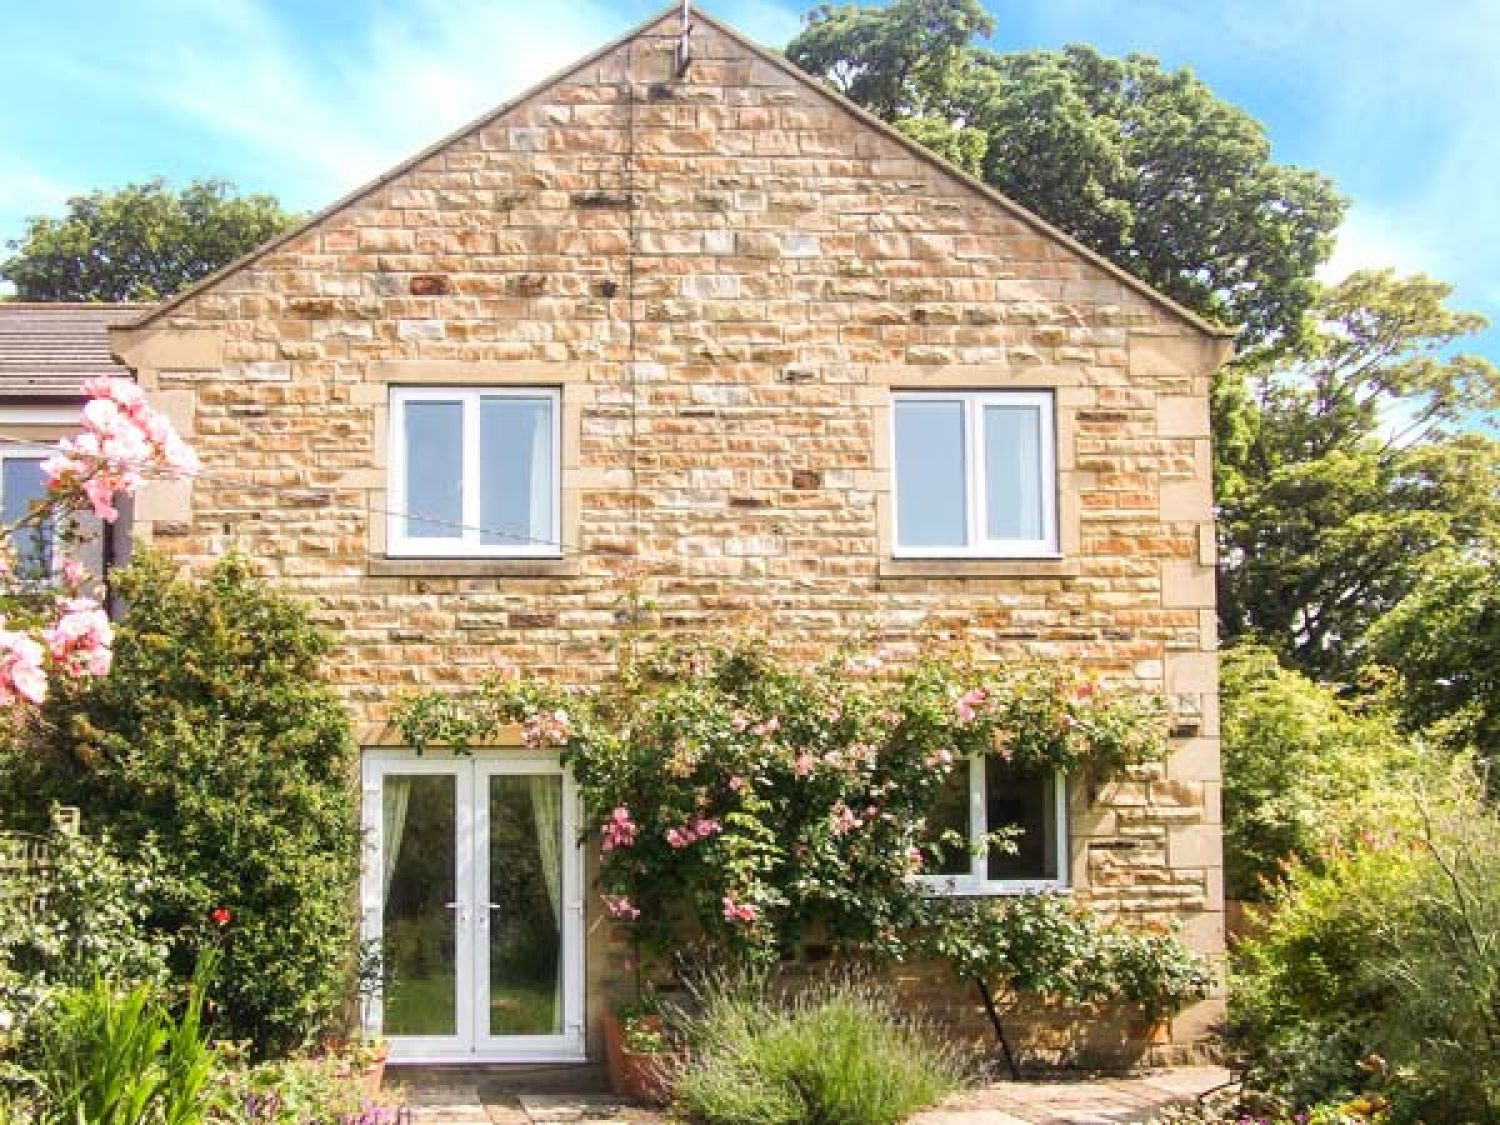 1 Mowbray Court - Yorkshire Dales - 30727 - photo 1